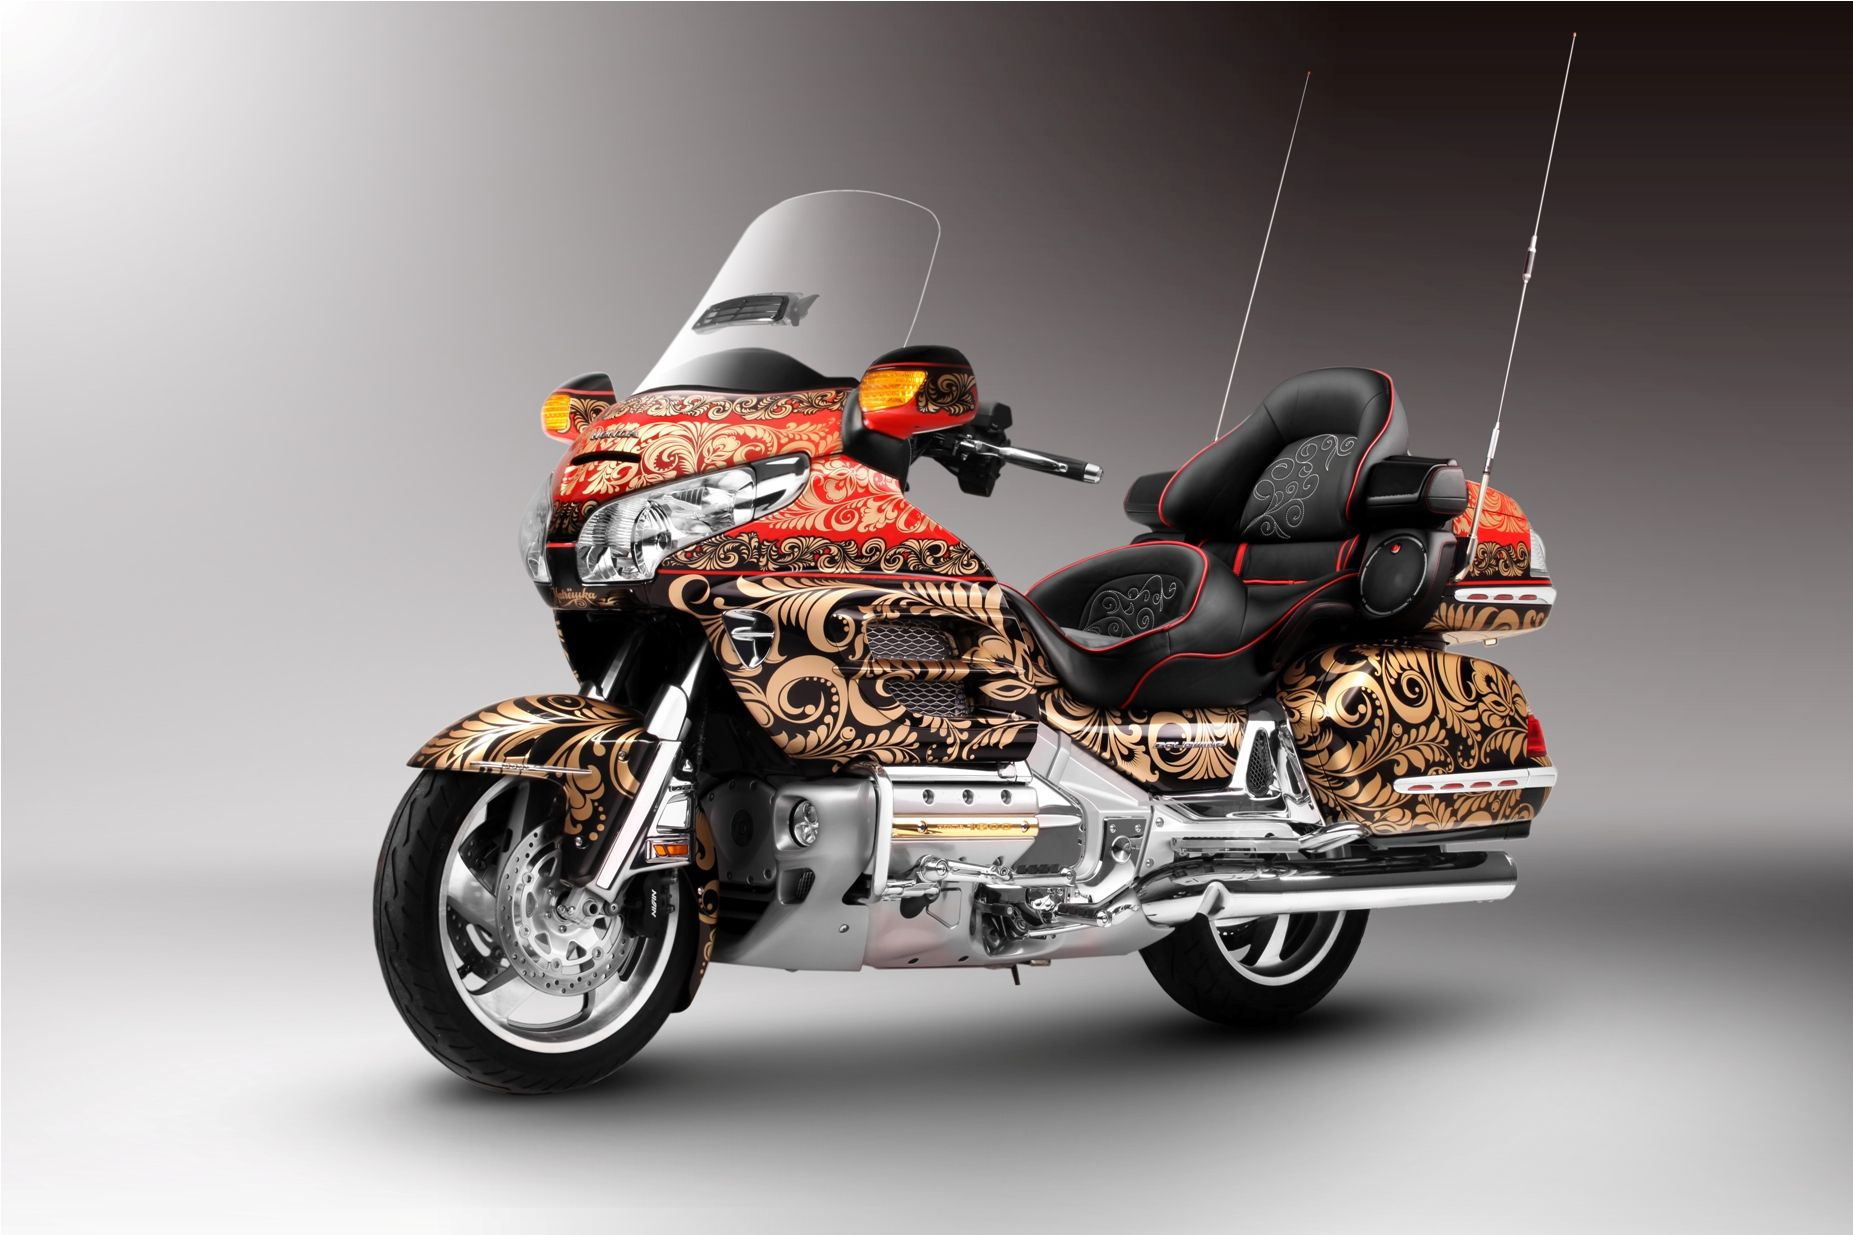 honda goldwing 1800 custom my goldwing gallery pinterest honda and custom motorcycles. Black Bedroom Furniture Sets. Home Design Ideas